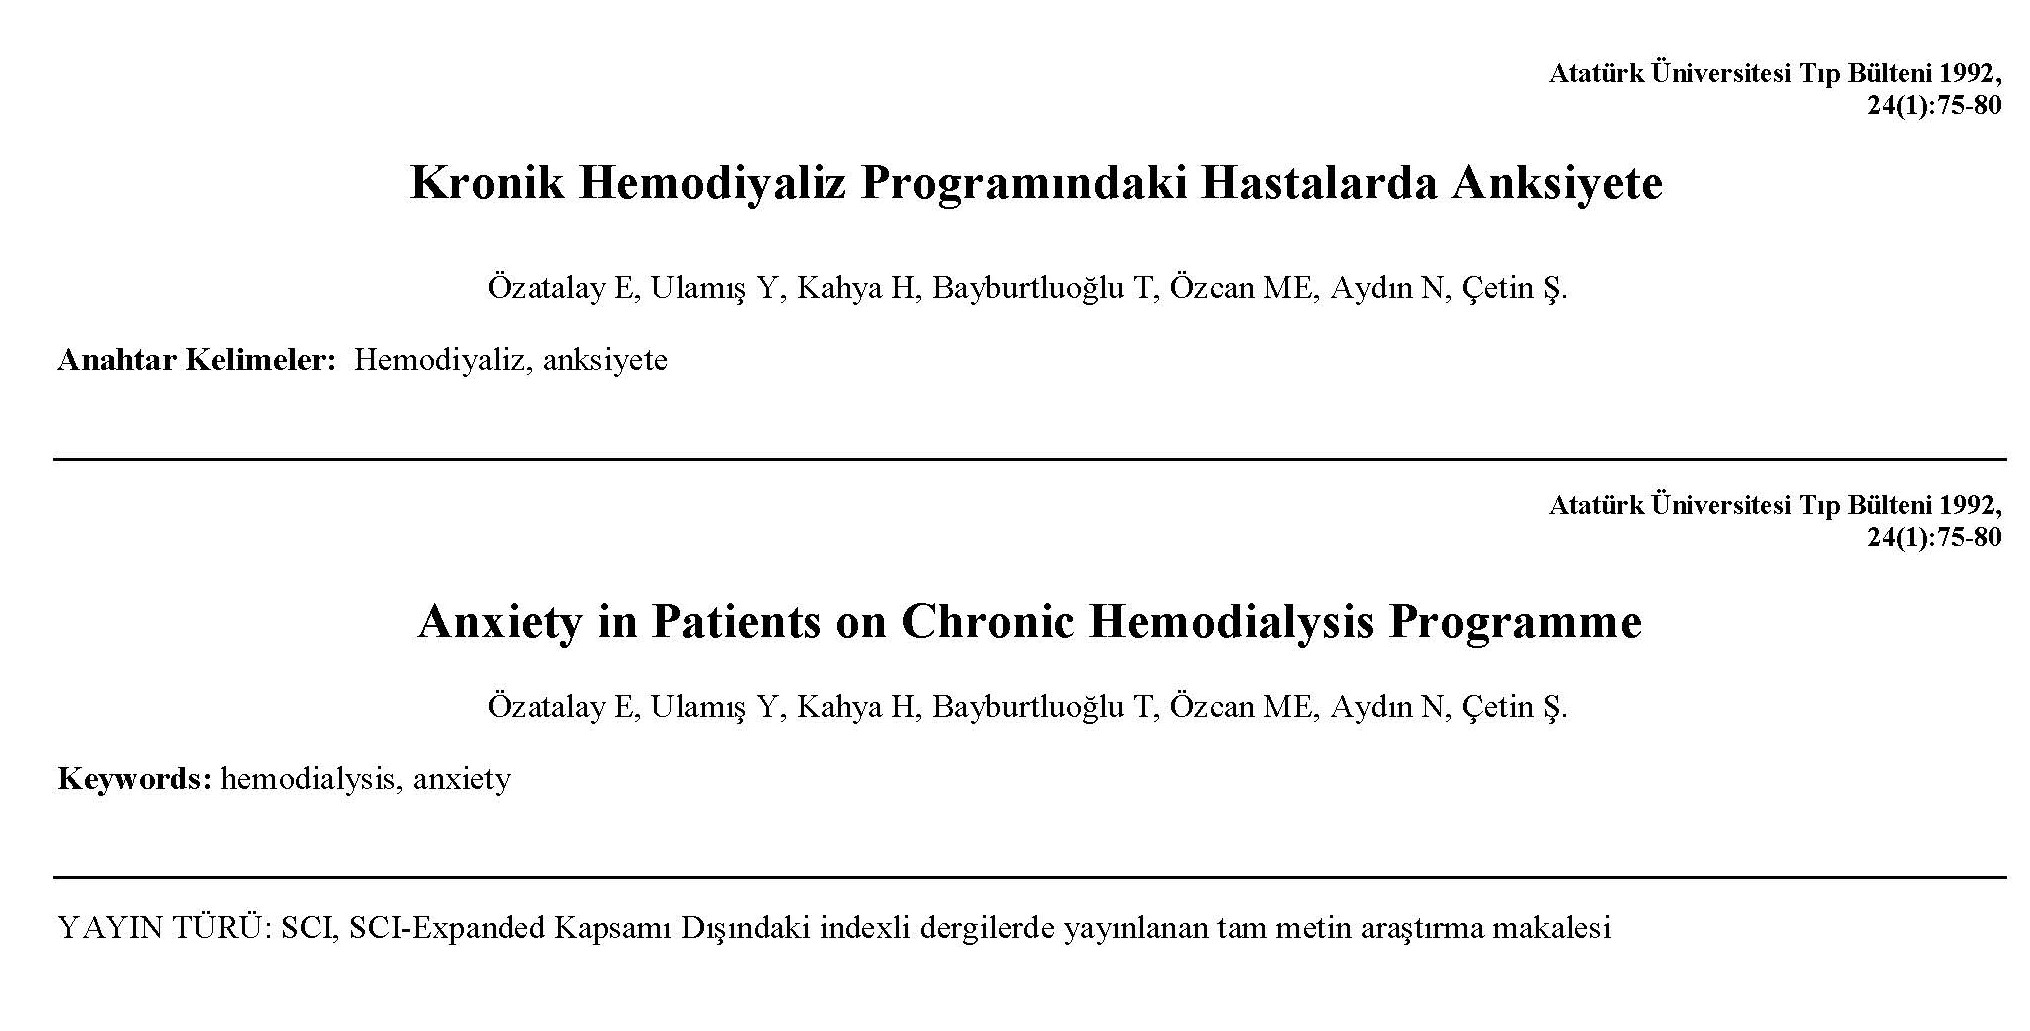 Anxiety in Patients on Chronic Hemodialysis Programme